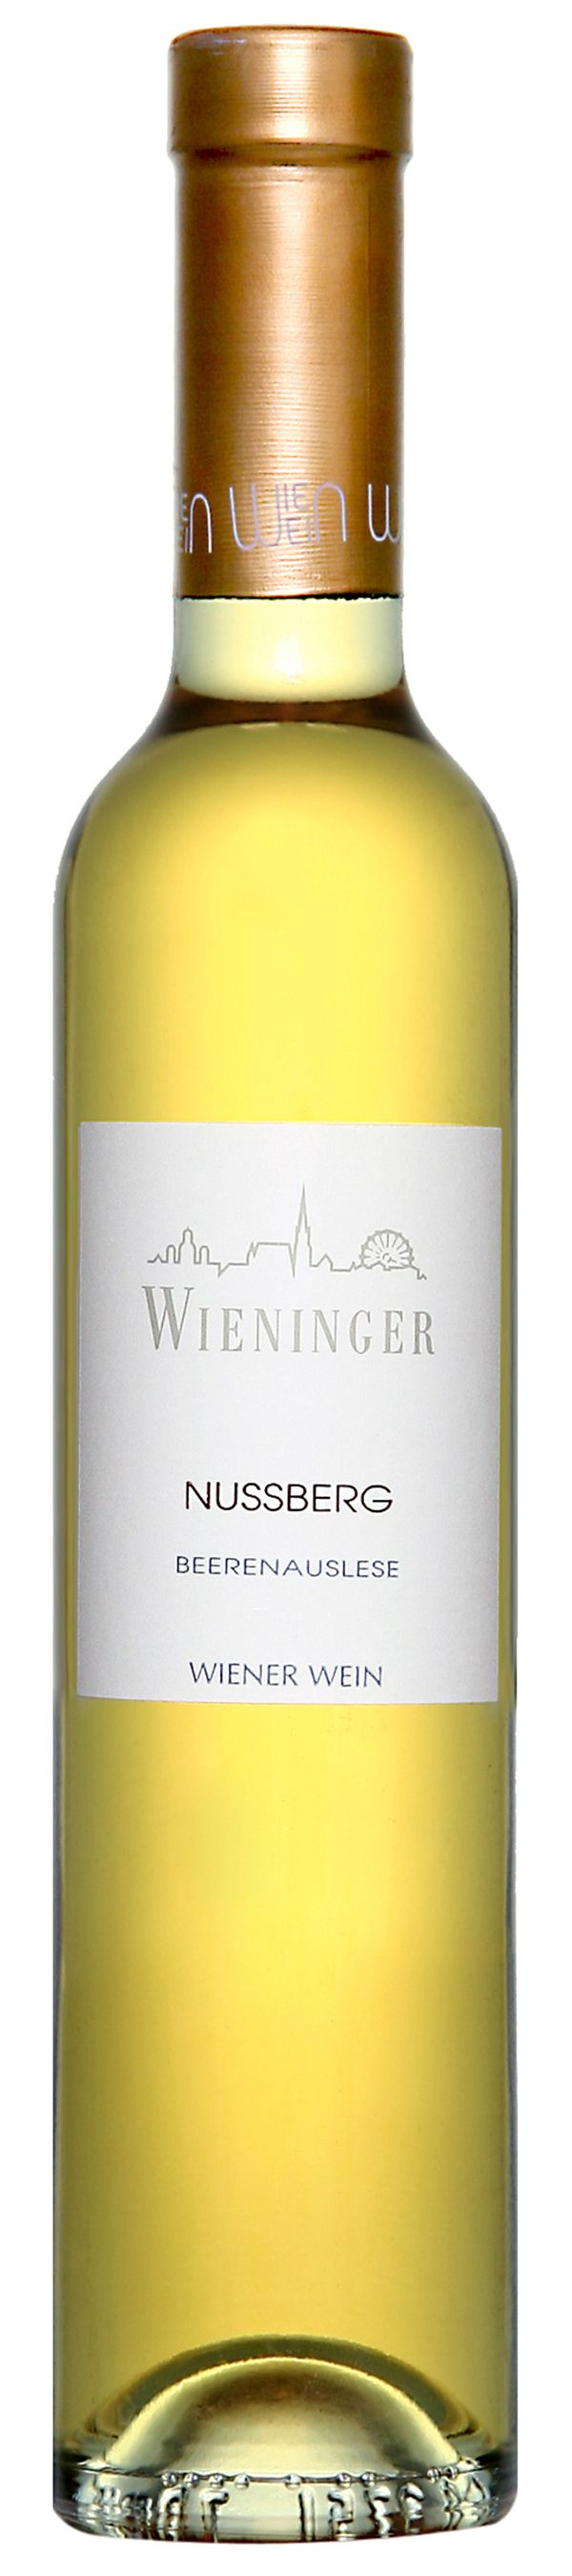 Nussberg Beerenauslese | The Winebow Group